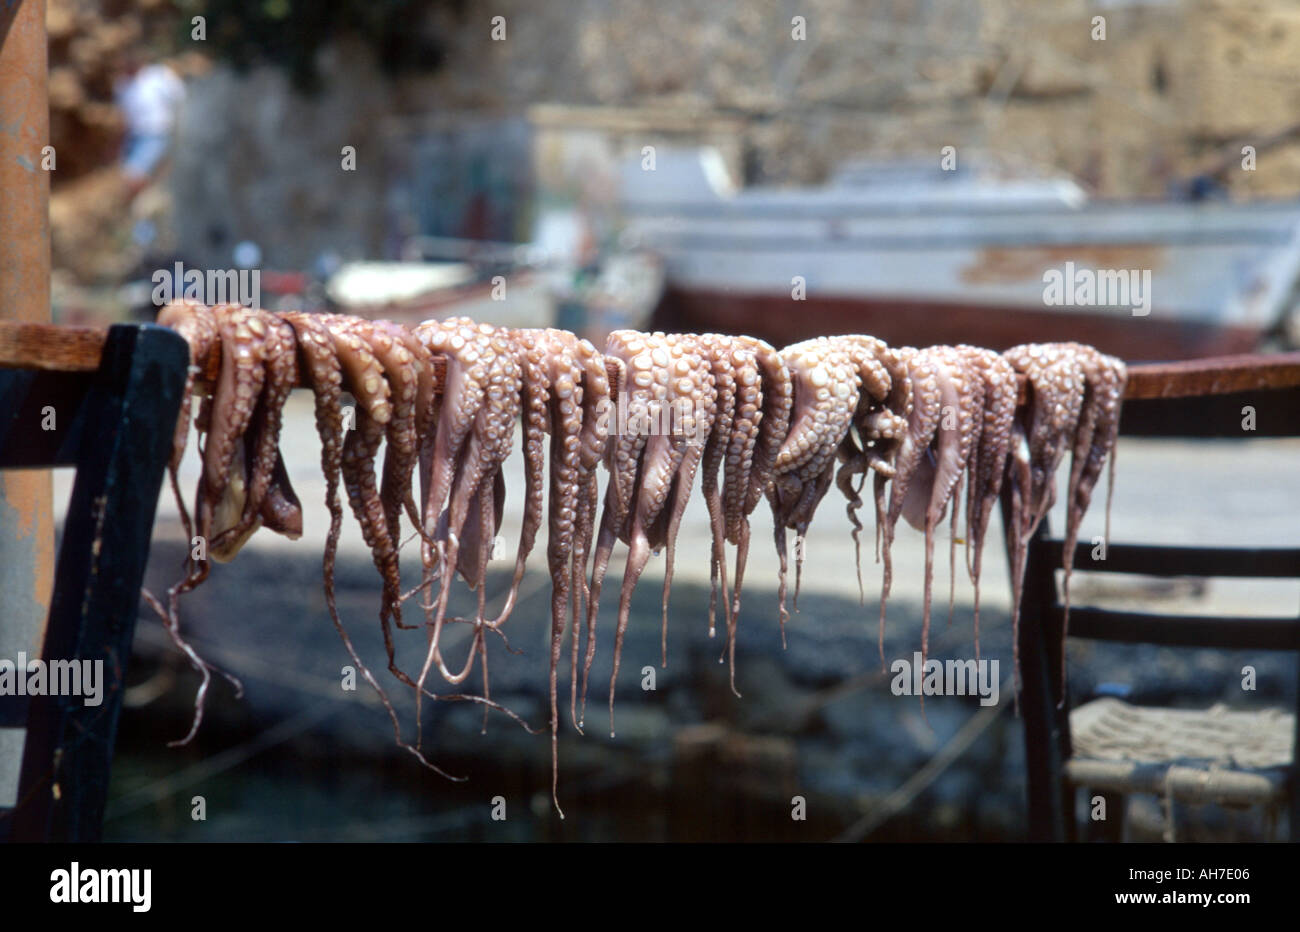 Octopus Octopi Drying in the Sun Prior to Cooking - Stock Image